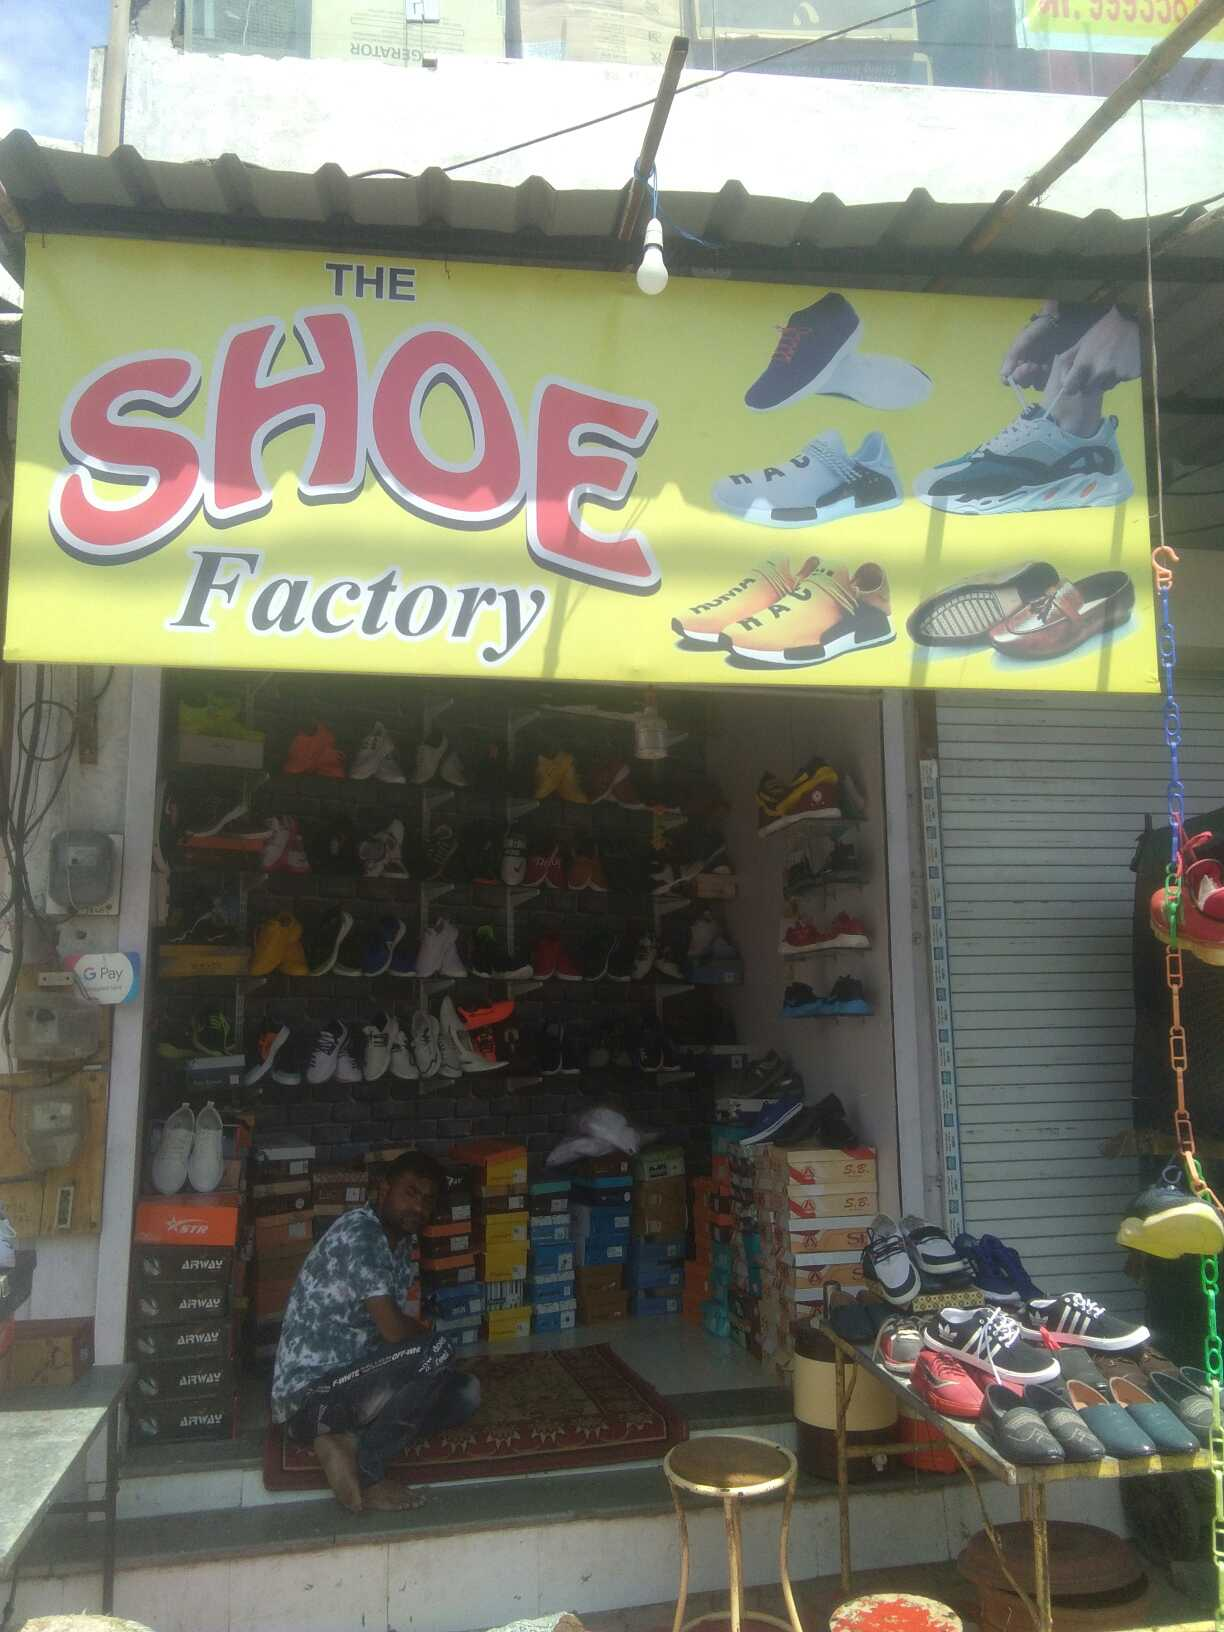 The shoes factary